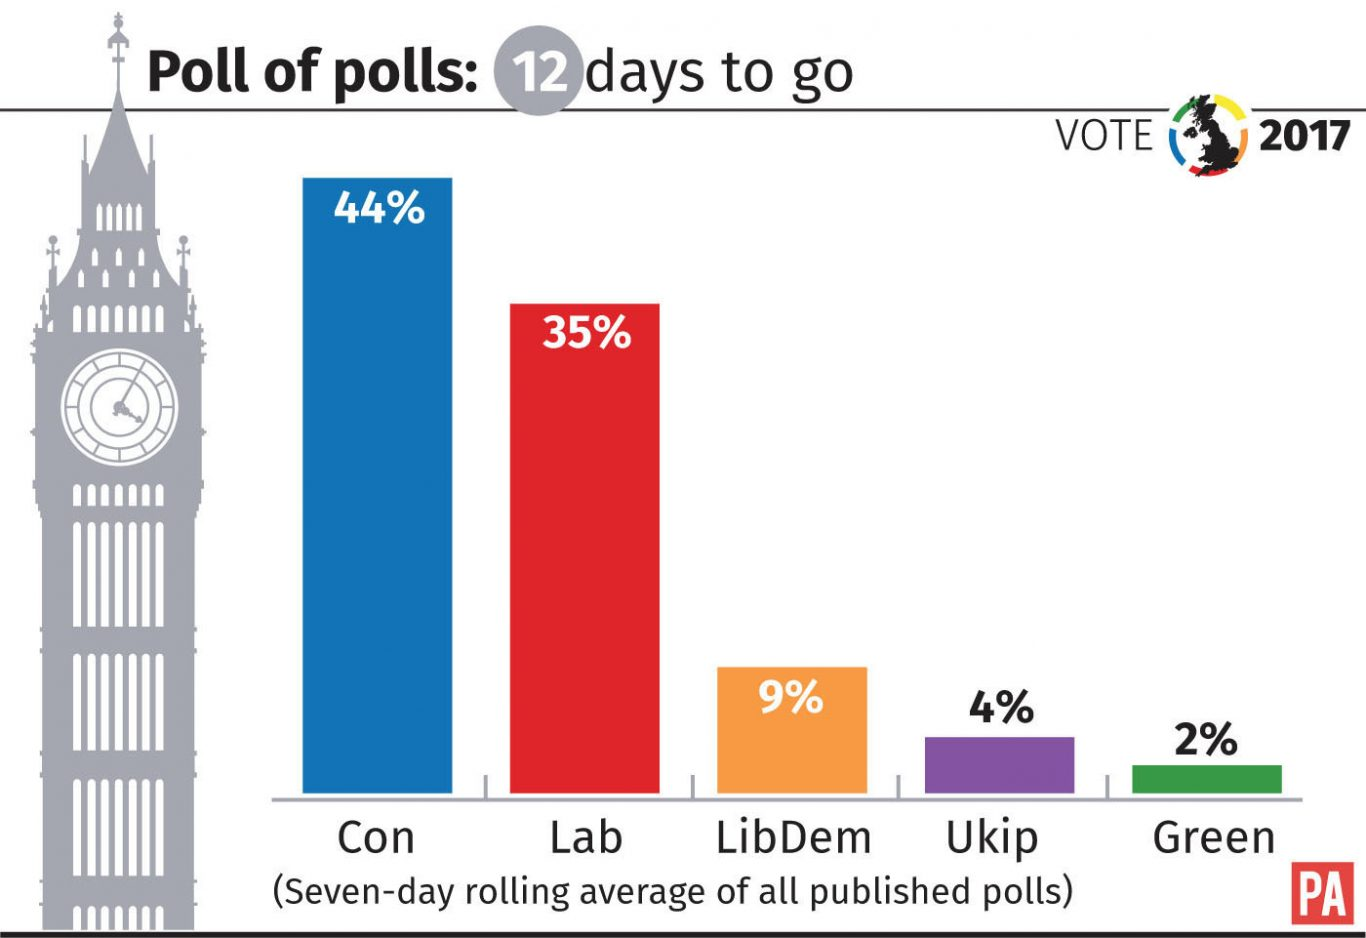 How the parties are faring in the poll of polls with 12 days to go